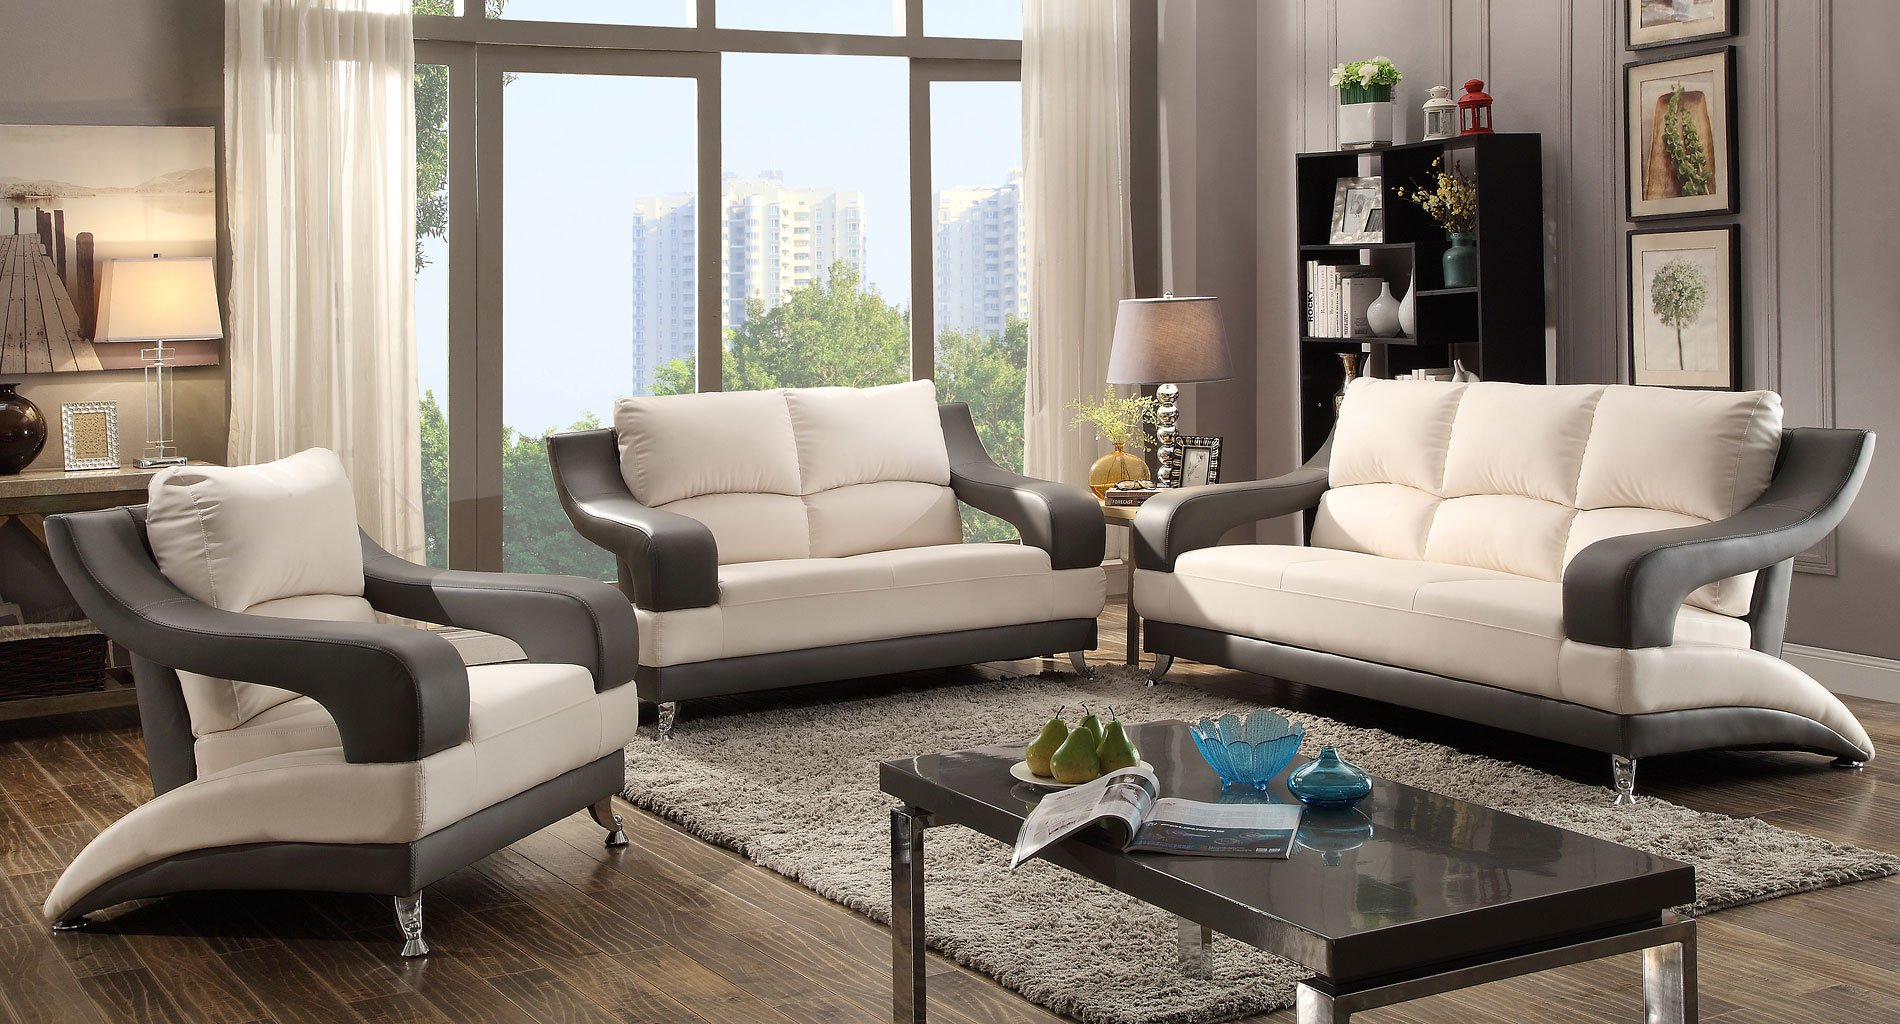 G259 Modern Living Room Set White And Gray By Glory